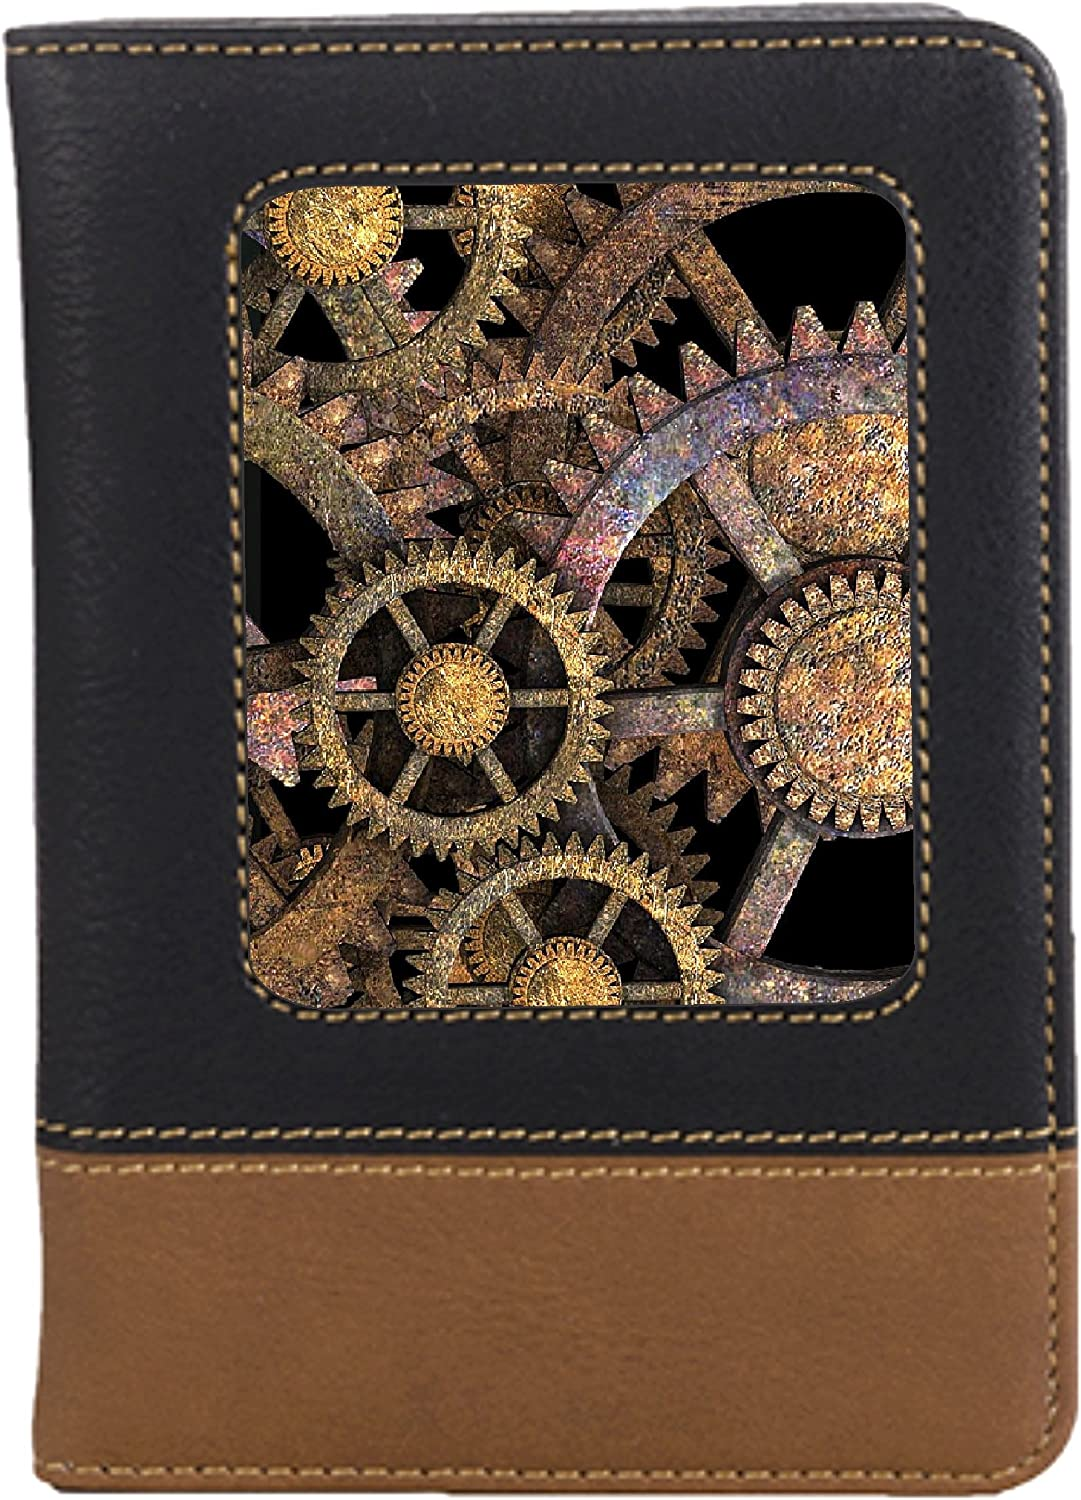 Mechanical Steampunk Leatherette Passport Wallet Style Case Cover For Travel